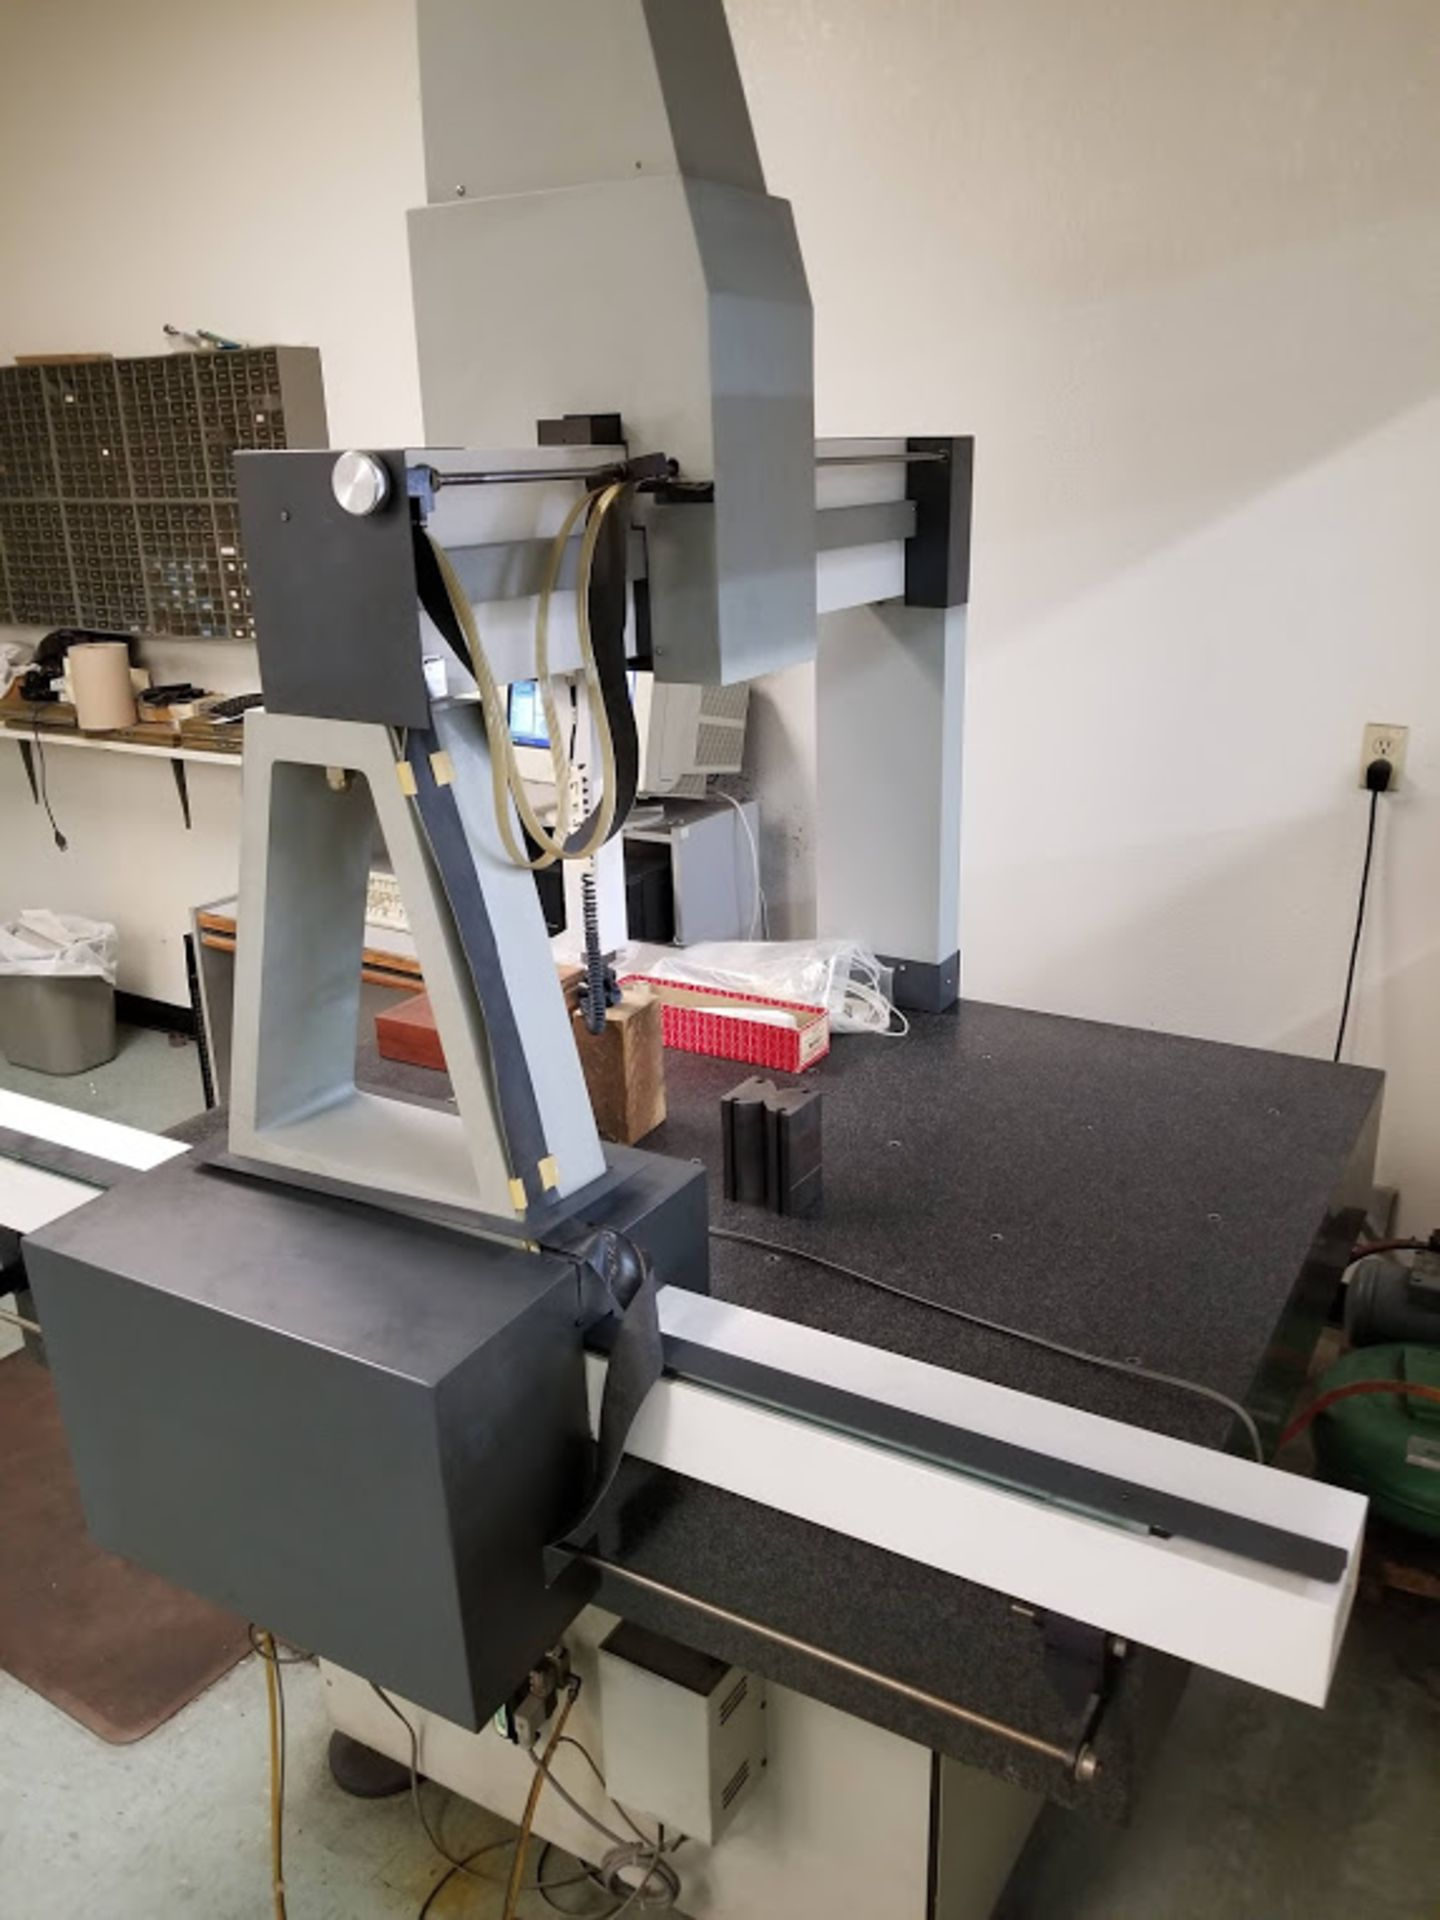 Lot 7A - CMM Coordinate Measuring Machine with computer, tanks & misc.